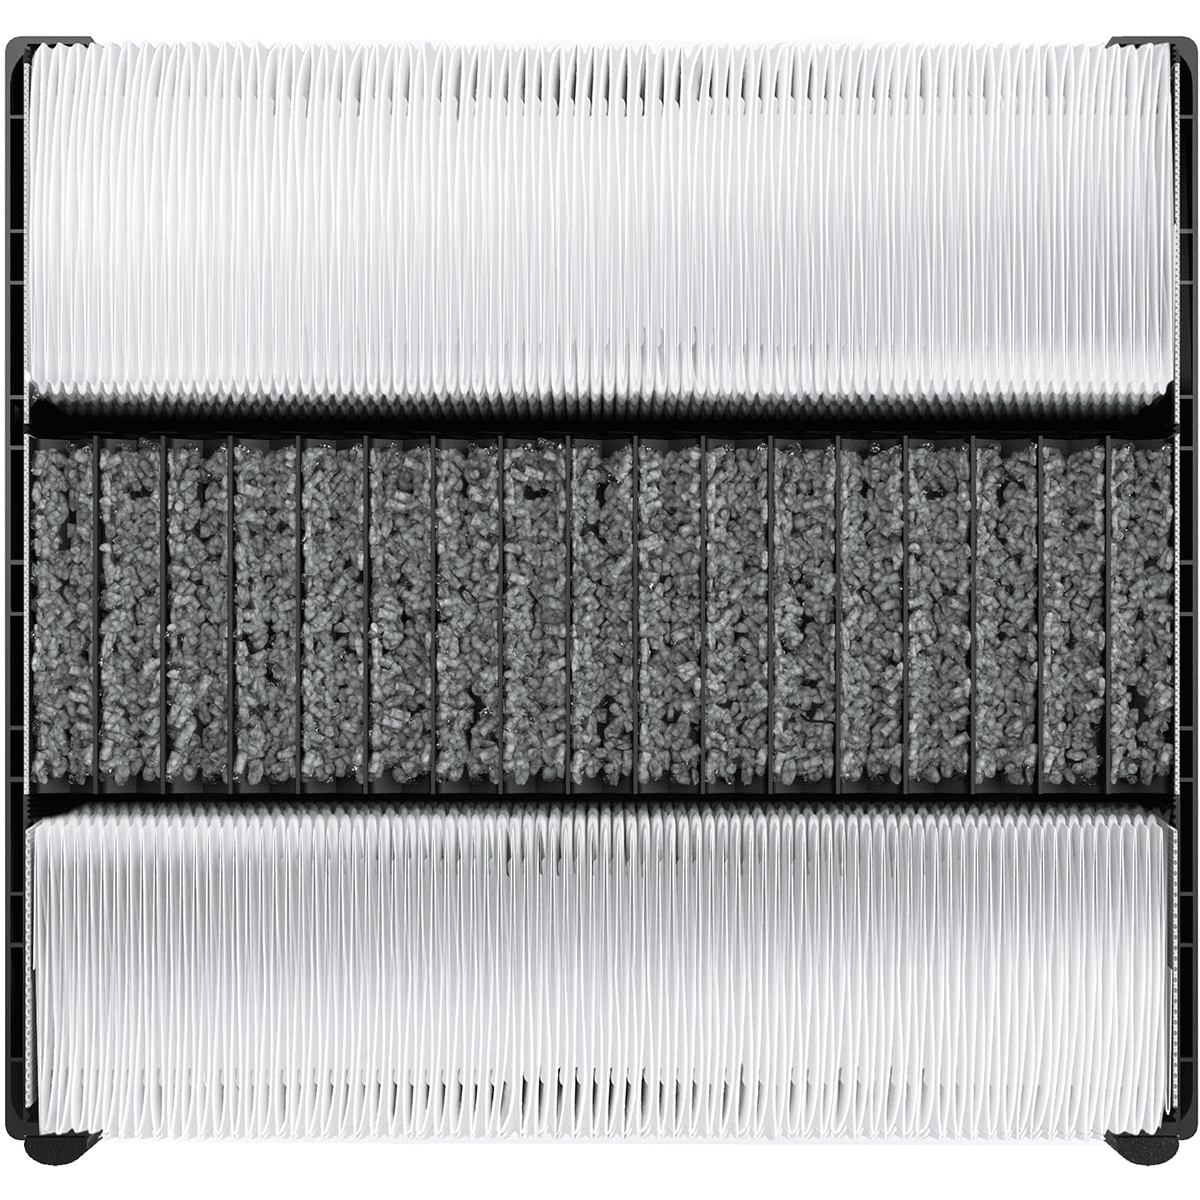 Image of  Aeris Aair 3-in-1 Hepa H13 Replacement Filter